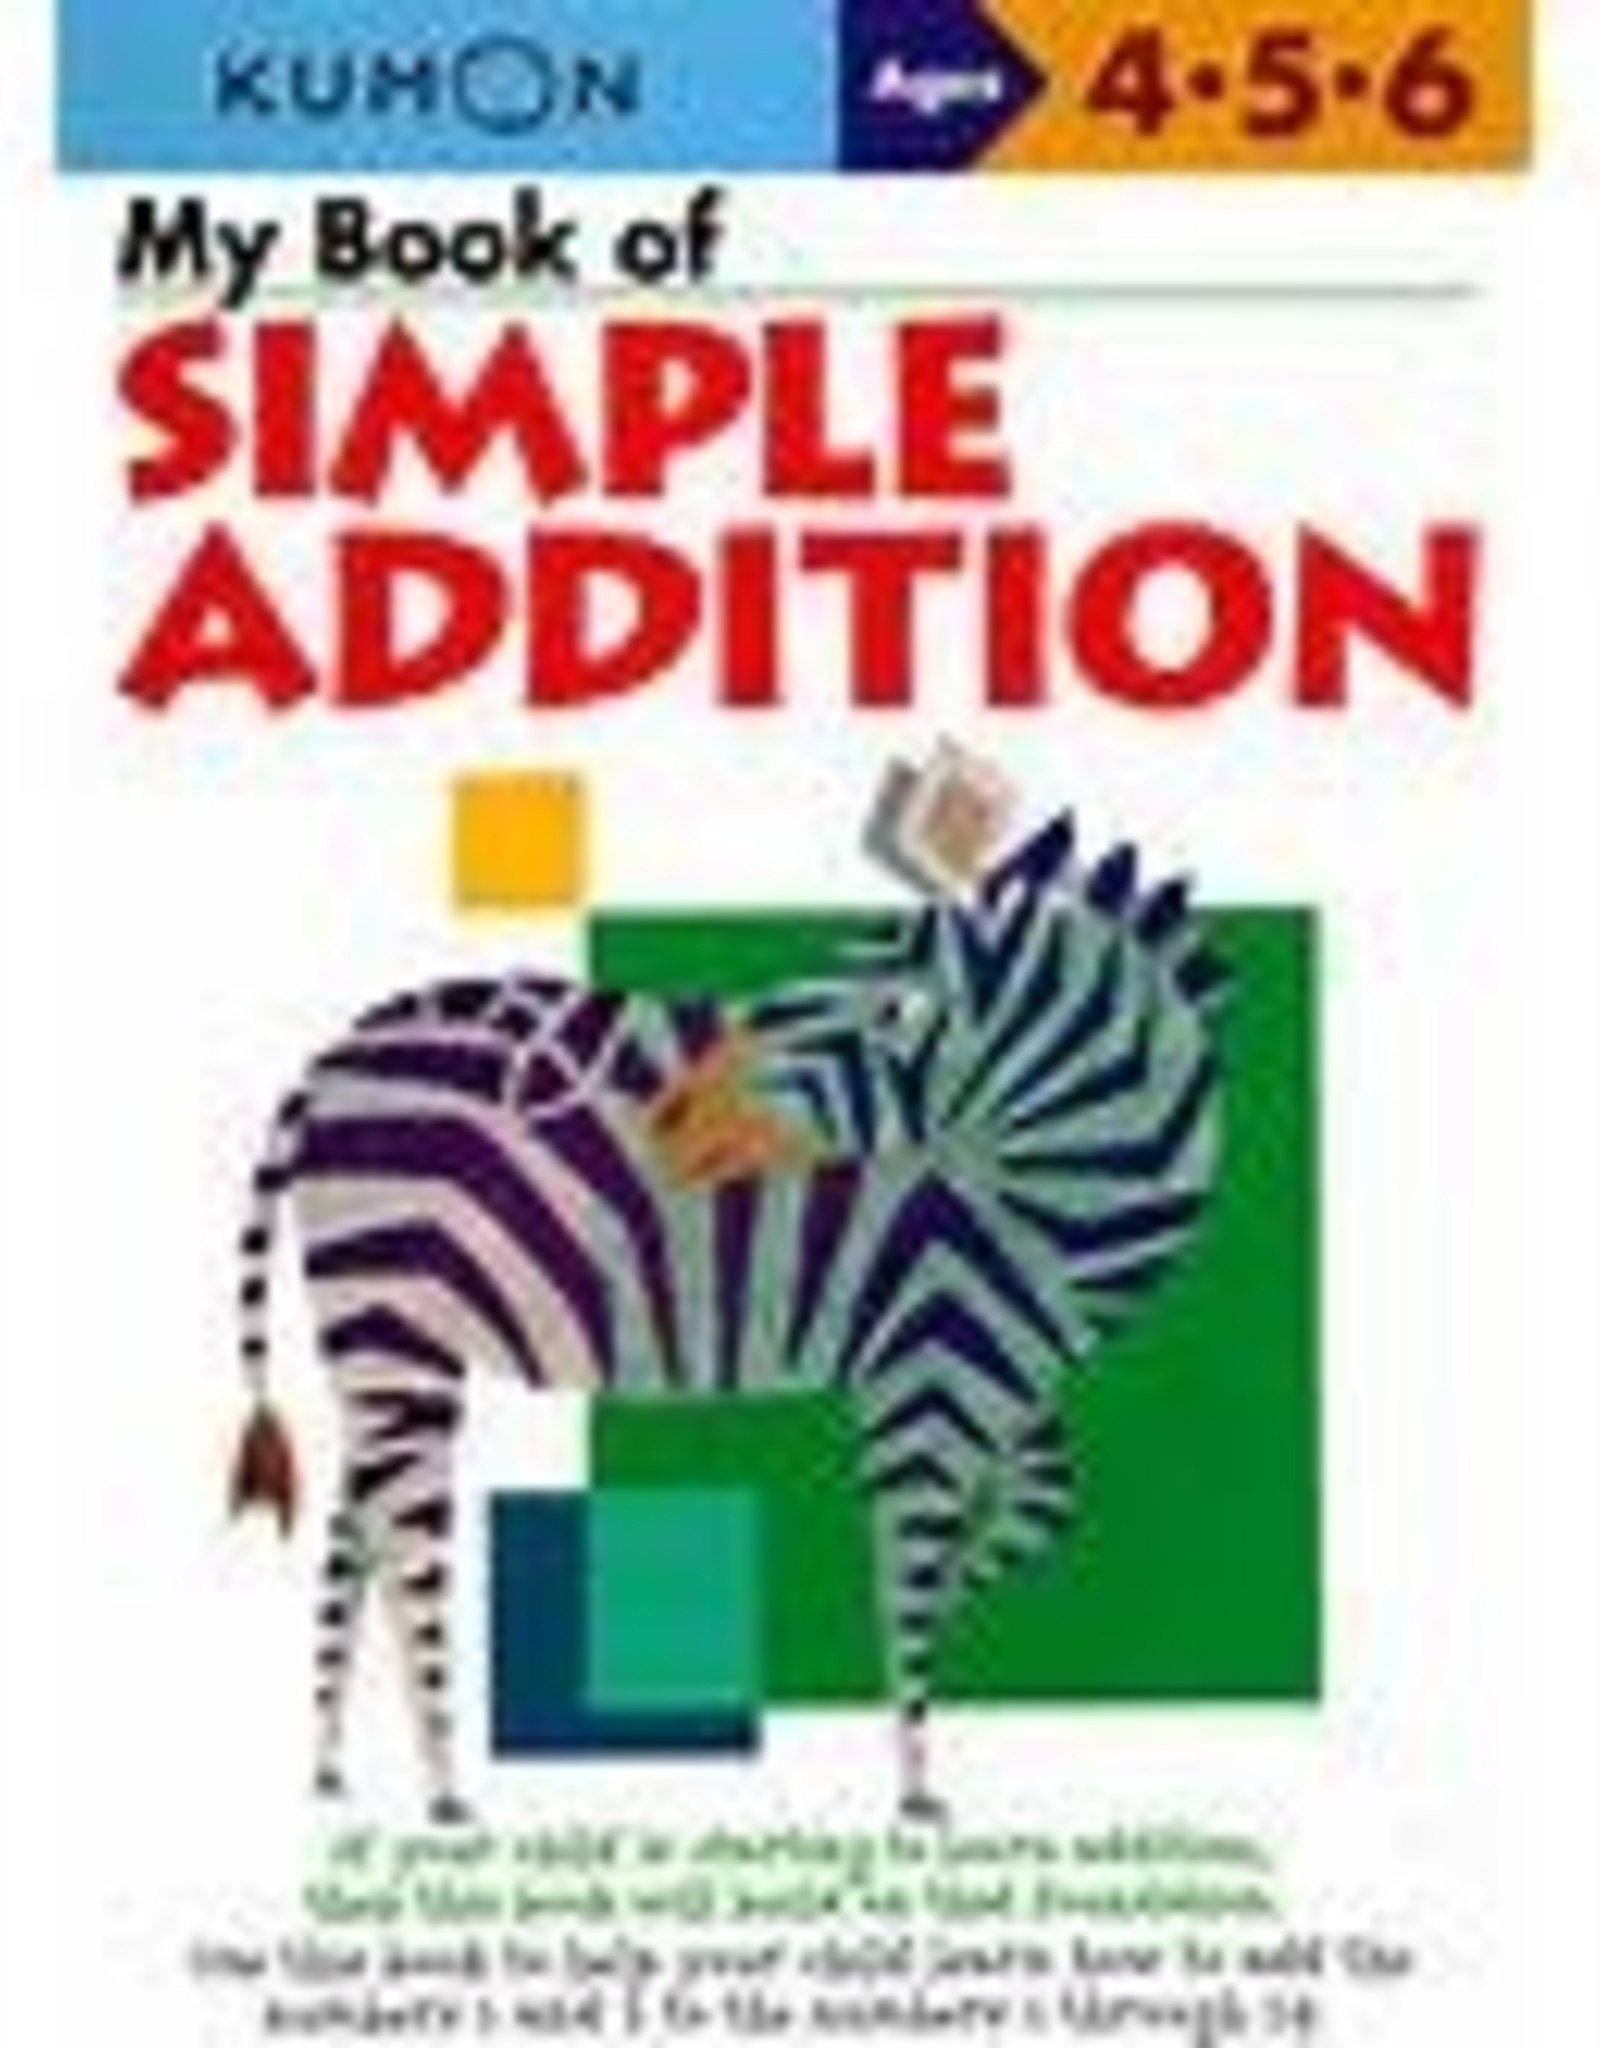 Kumon MY BOOK OF SIMPLE ADDITION